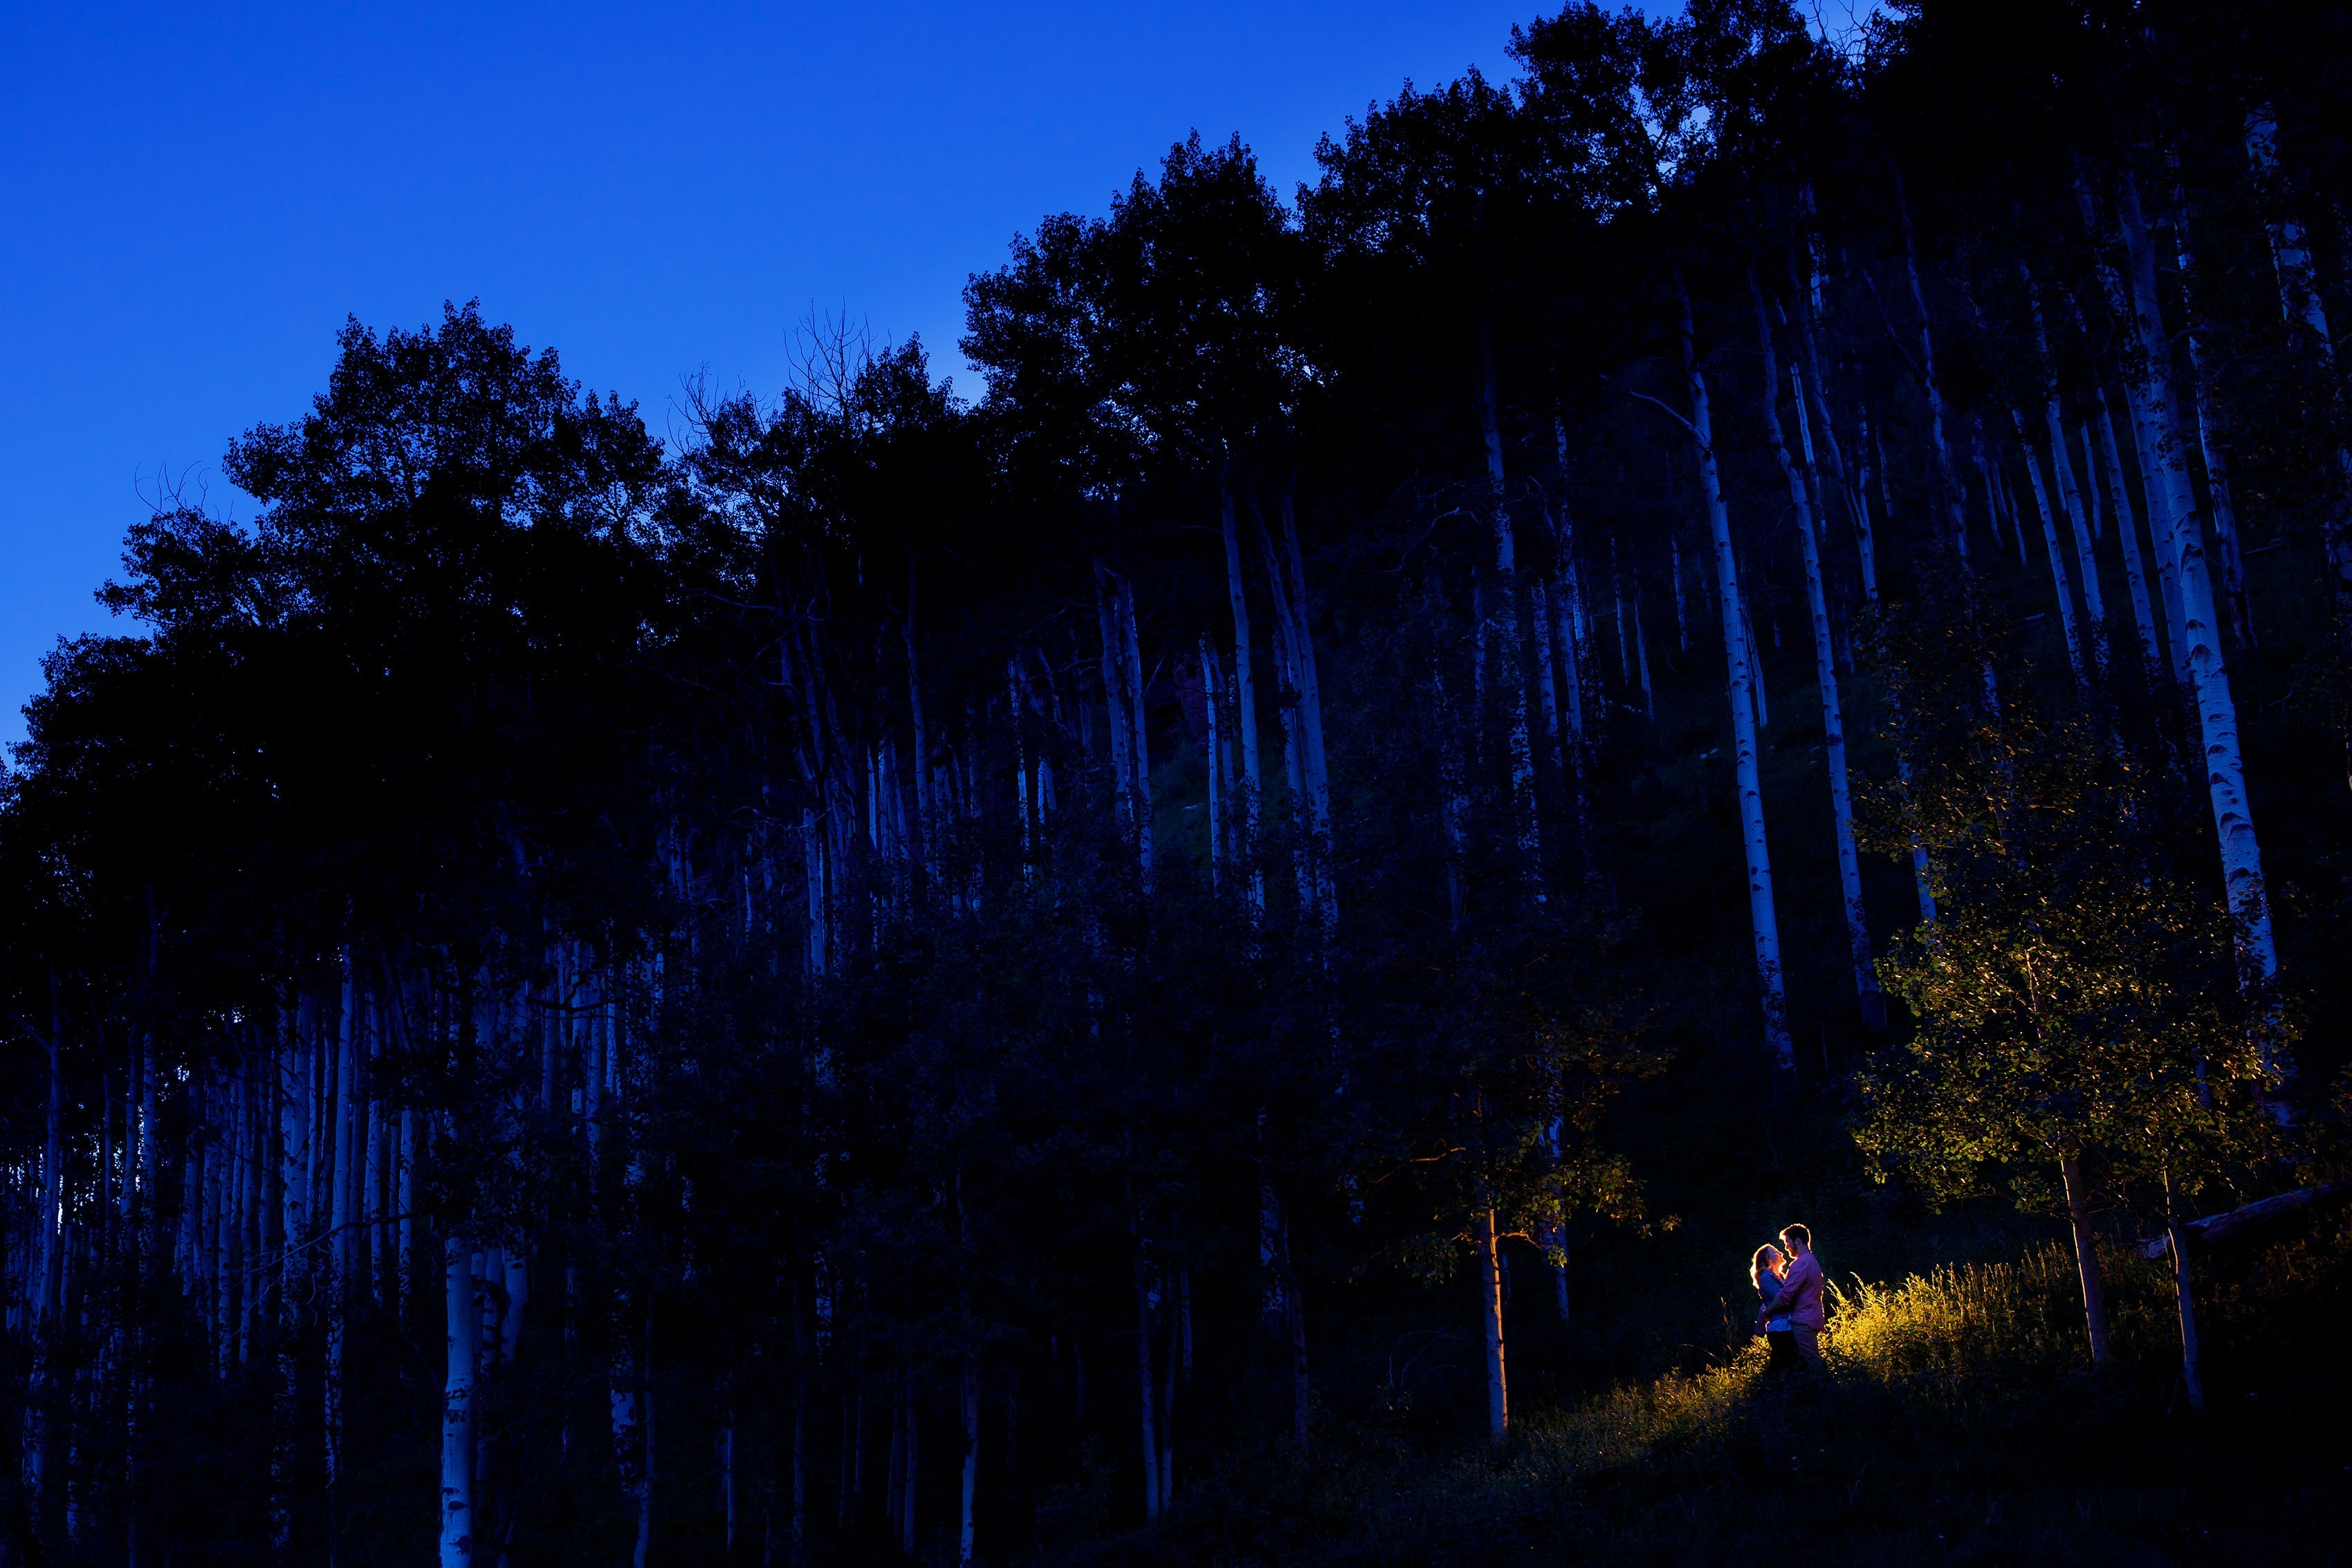 Twilight engagement in the aspen trees at Piney River Ranch near Vail, CO